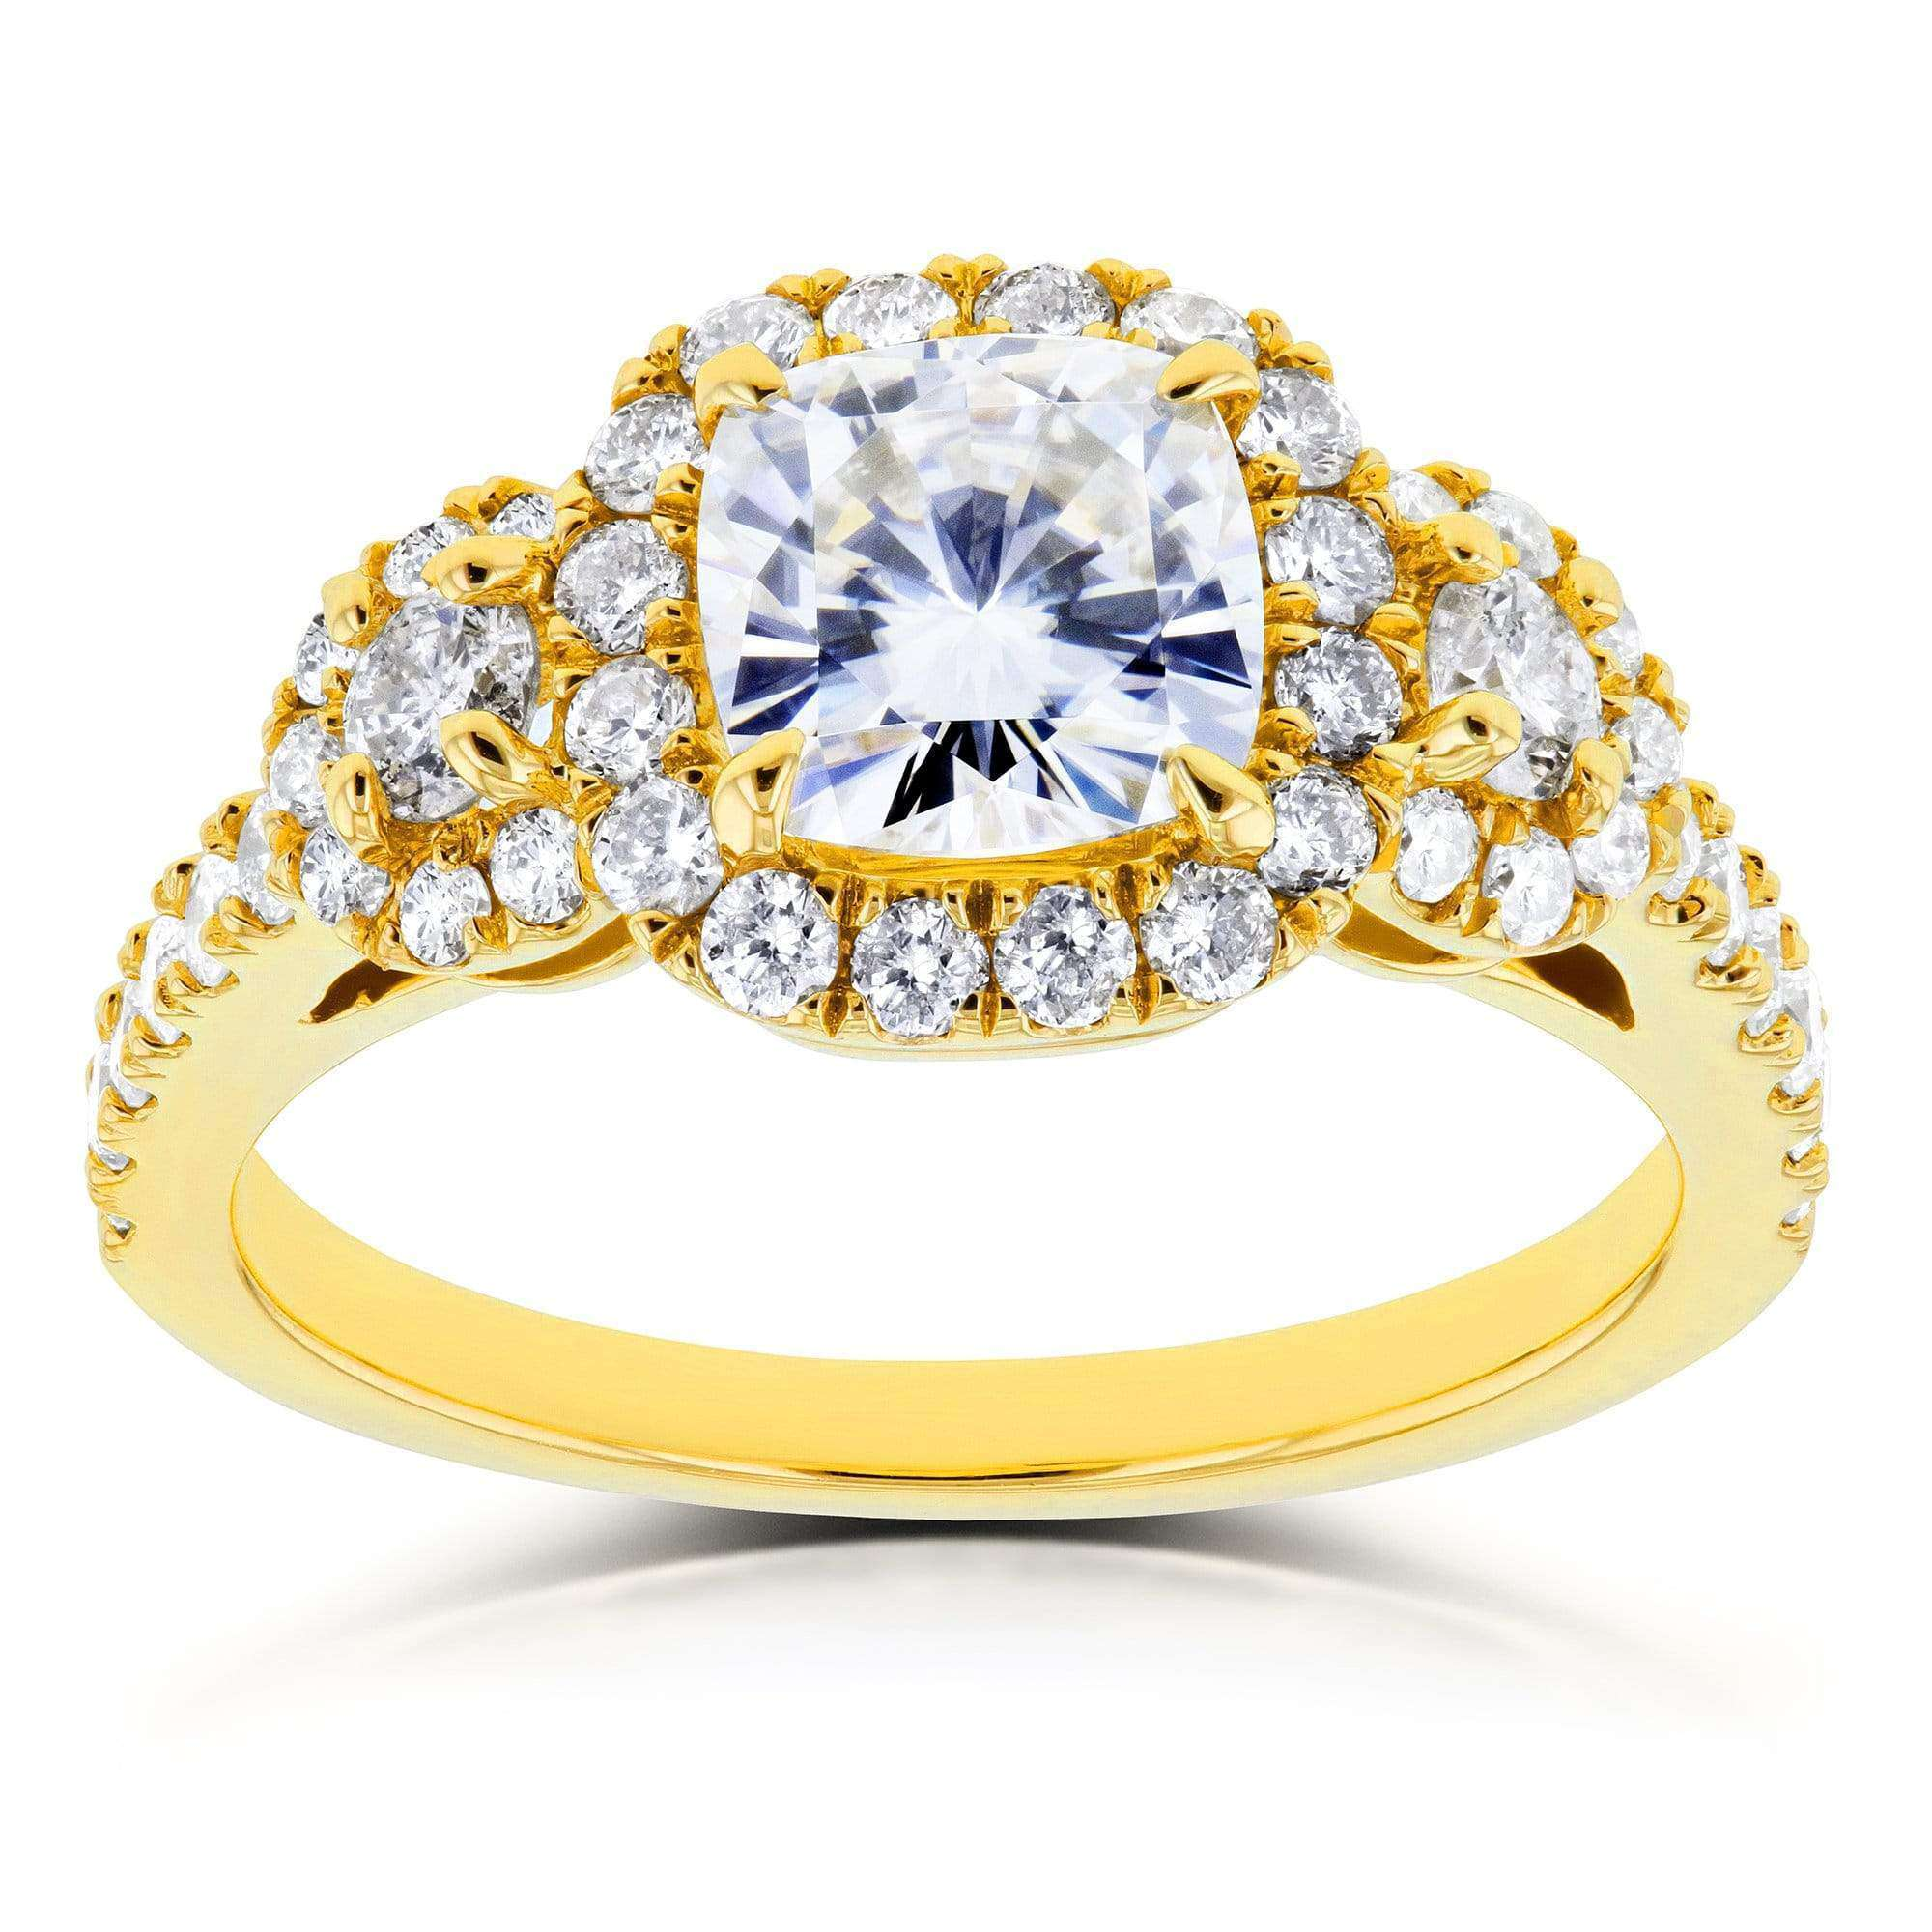 Top Near-Colorless (F-G) Cushion Moissanite and Diamond Engagement Ring 1 7/8 CTW in 14k Yellow Gold - 4.5